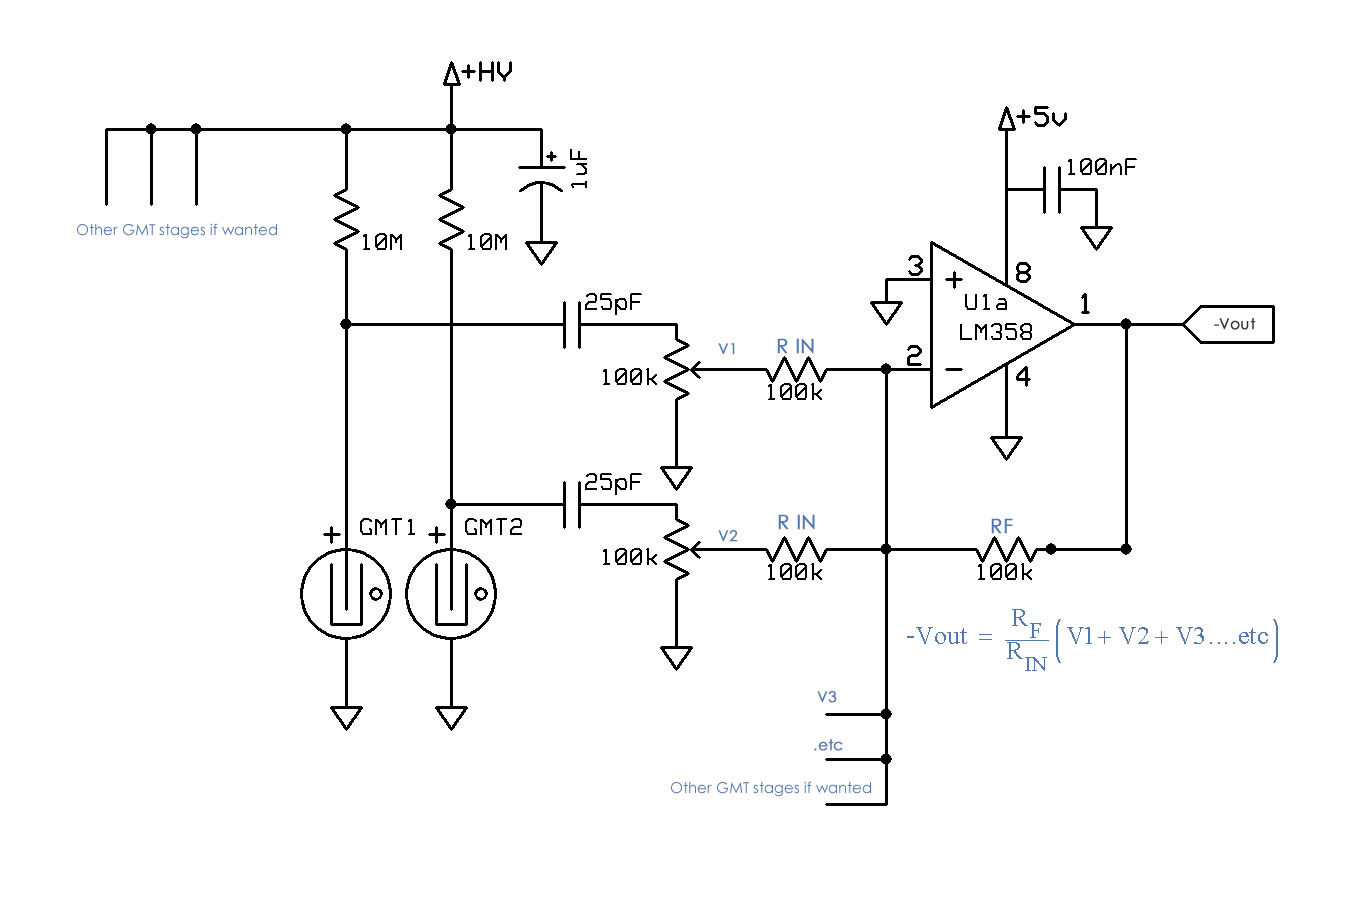 Basic Cosmic Ray Detector Circuit Astronomy Geiger Counter Schematic Bruno Benedetto Rossi Was A Famous Italian Experimental Physicist Who Made Major Contributions To Particle Physics And The Study Of Rays